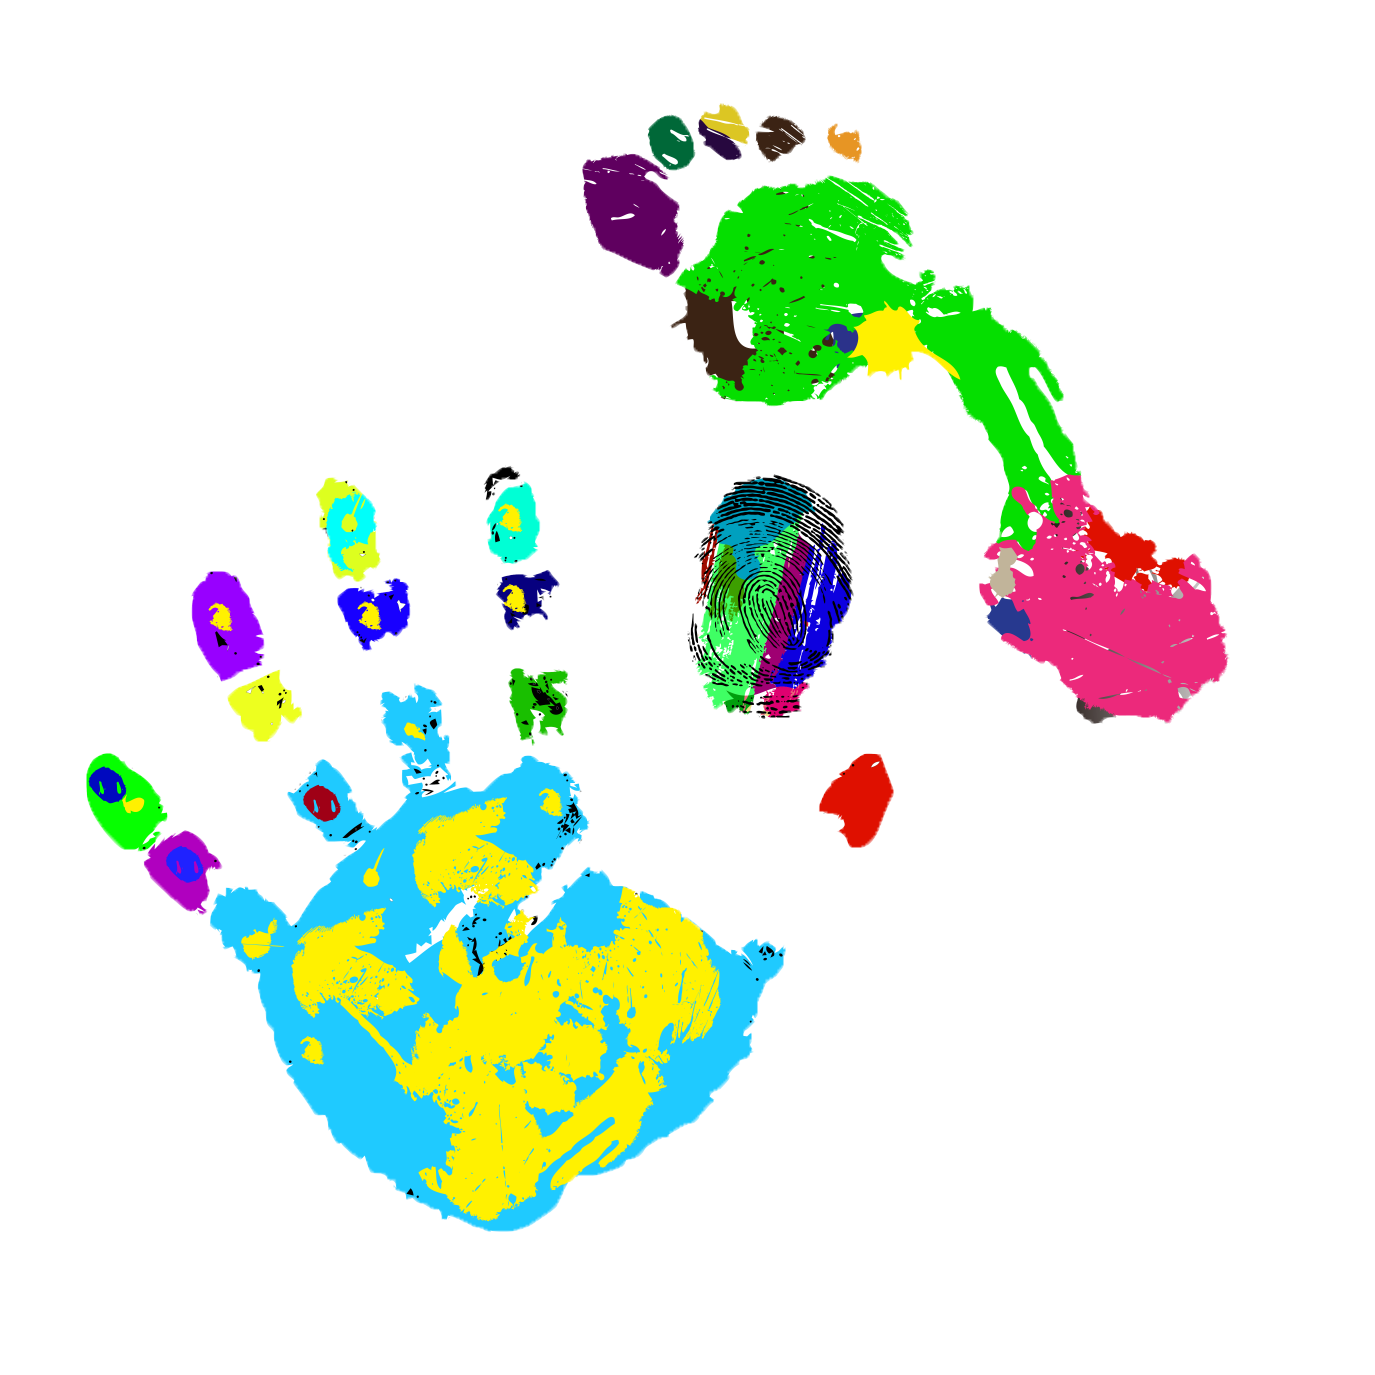 Drawing footprints watercolor. Painting footprint painted handprints